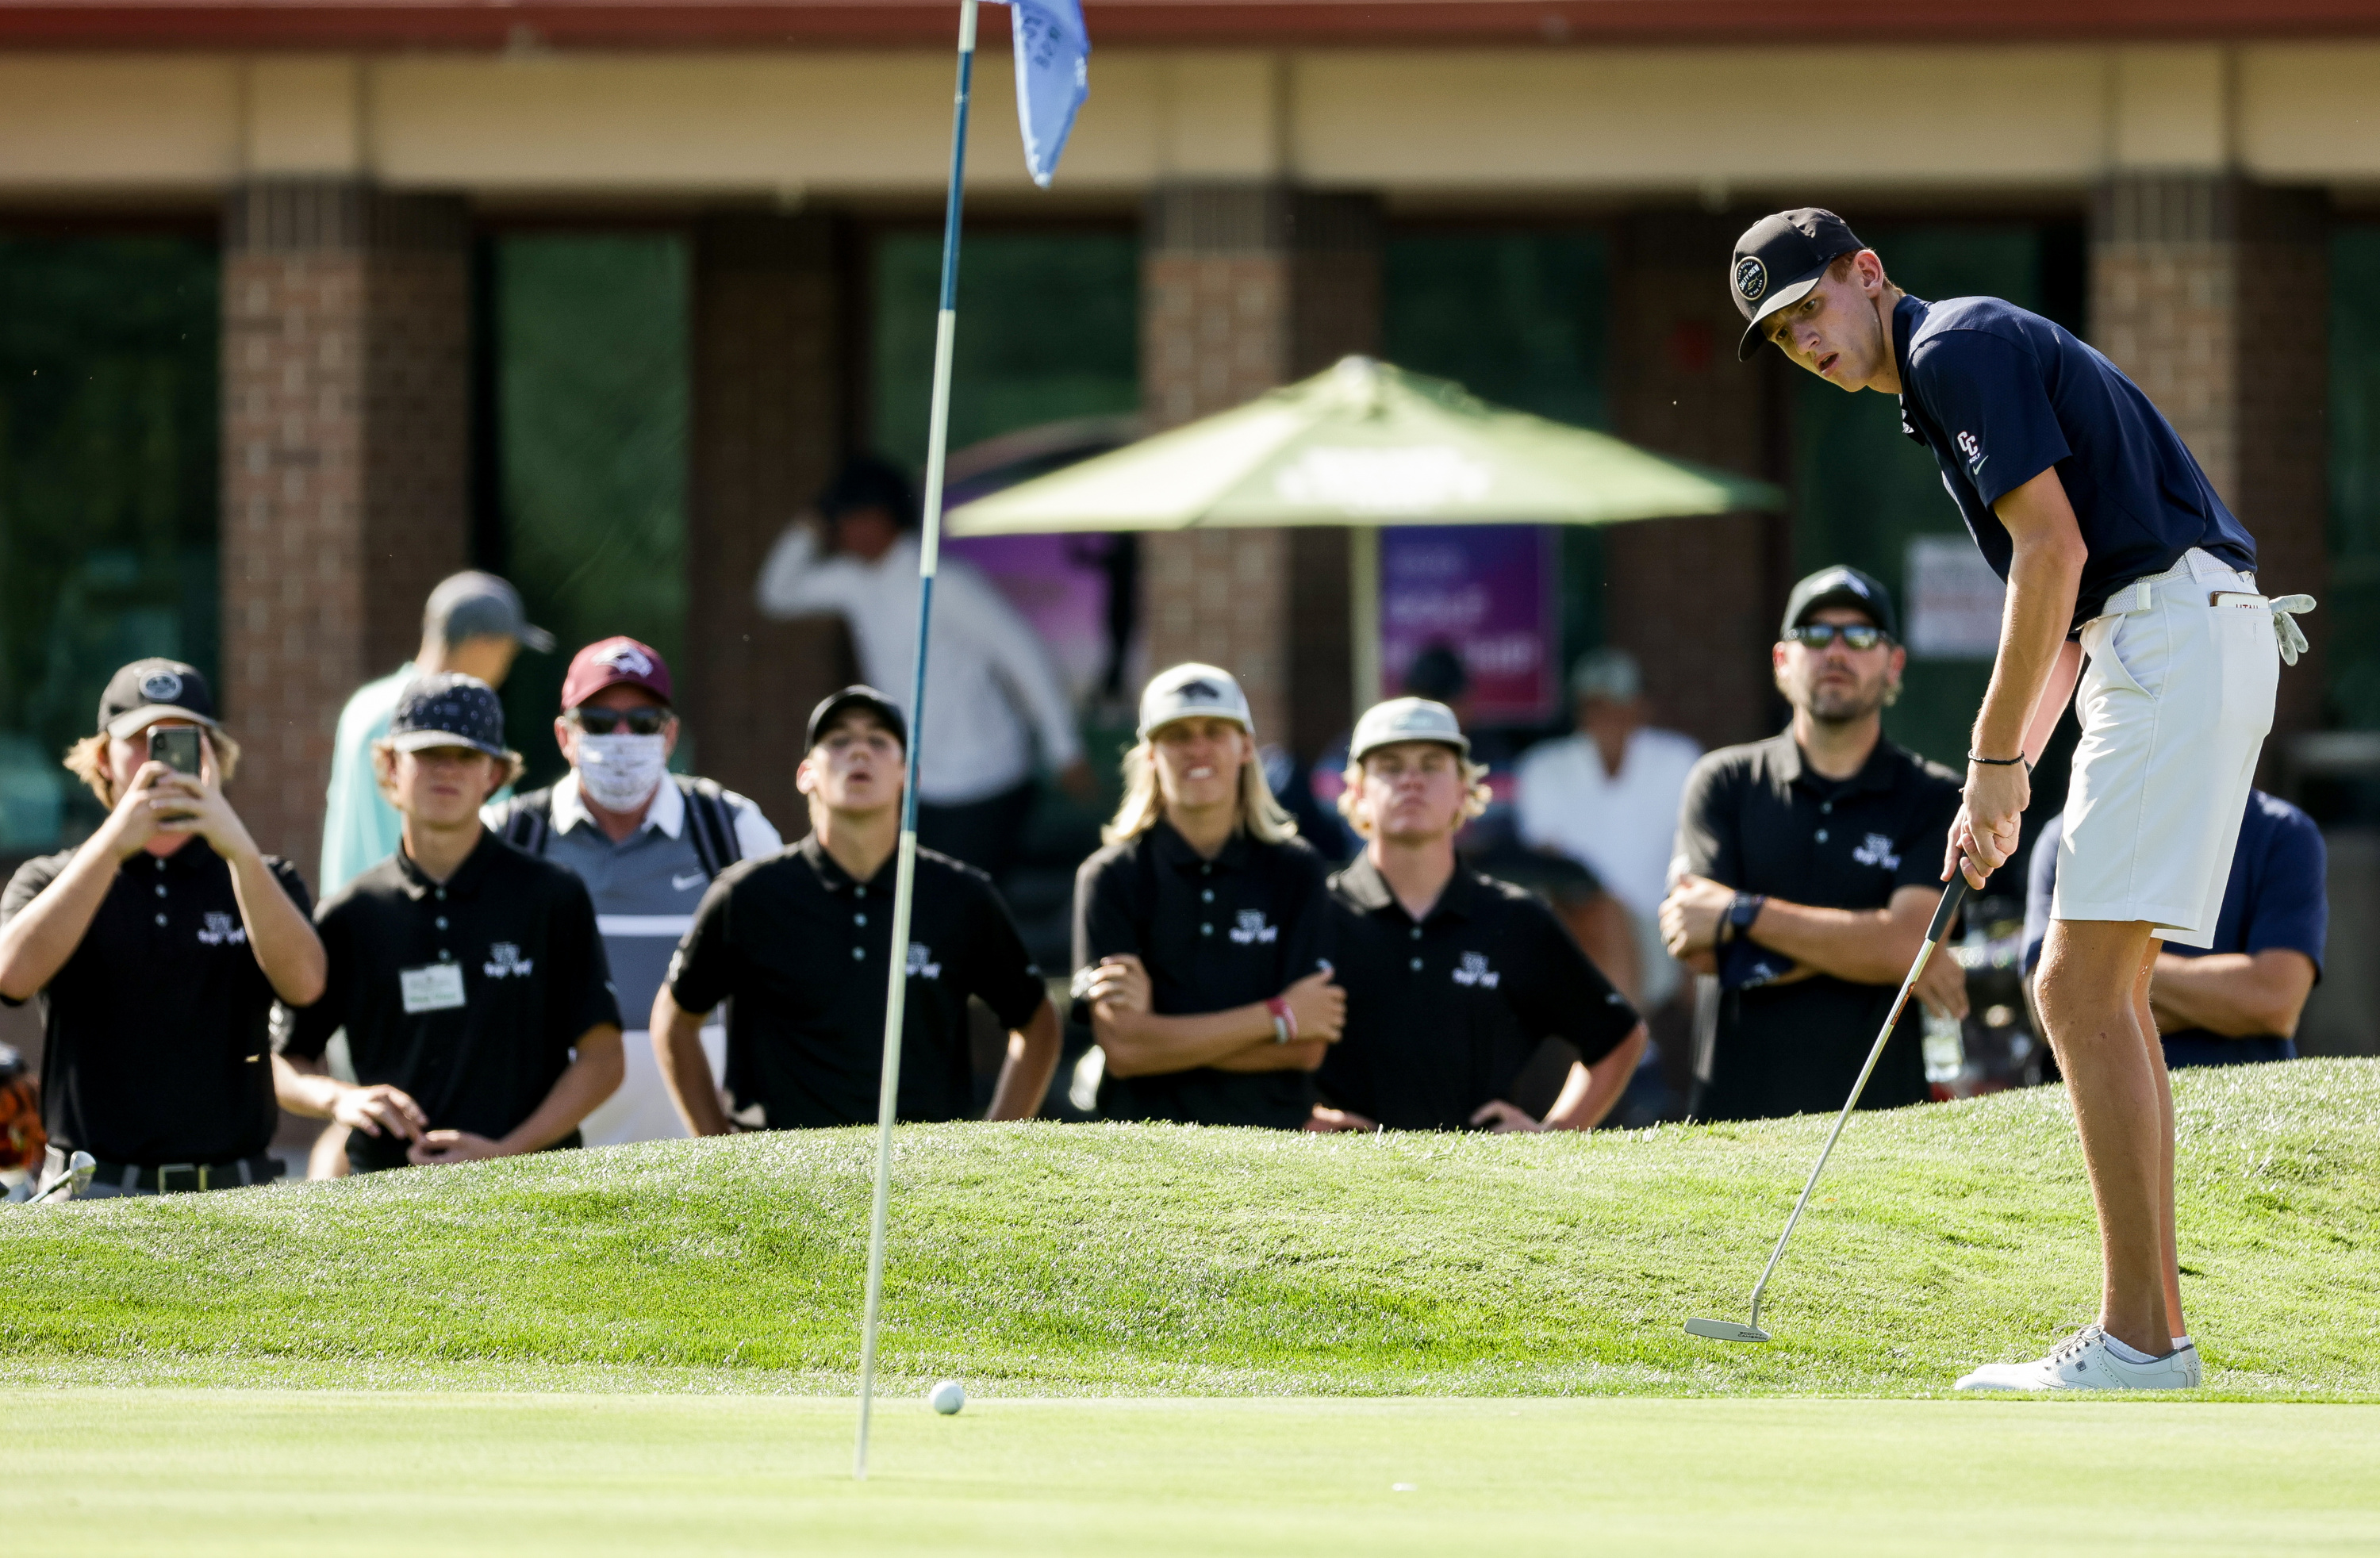 With teammates looking on, Luke Schone, of Crimson Cliffs, putts on the 18th green during the final round of the 4A boys golf tournament at Meadow Brook Golf Course in Taylorsville on Thursday, Oct. 8, 2020.